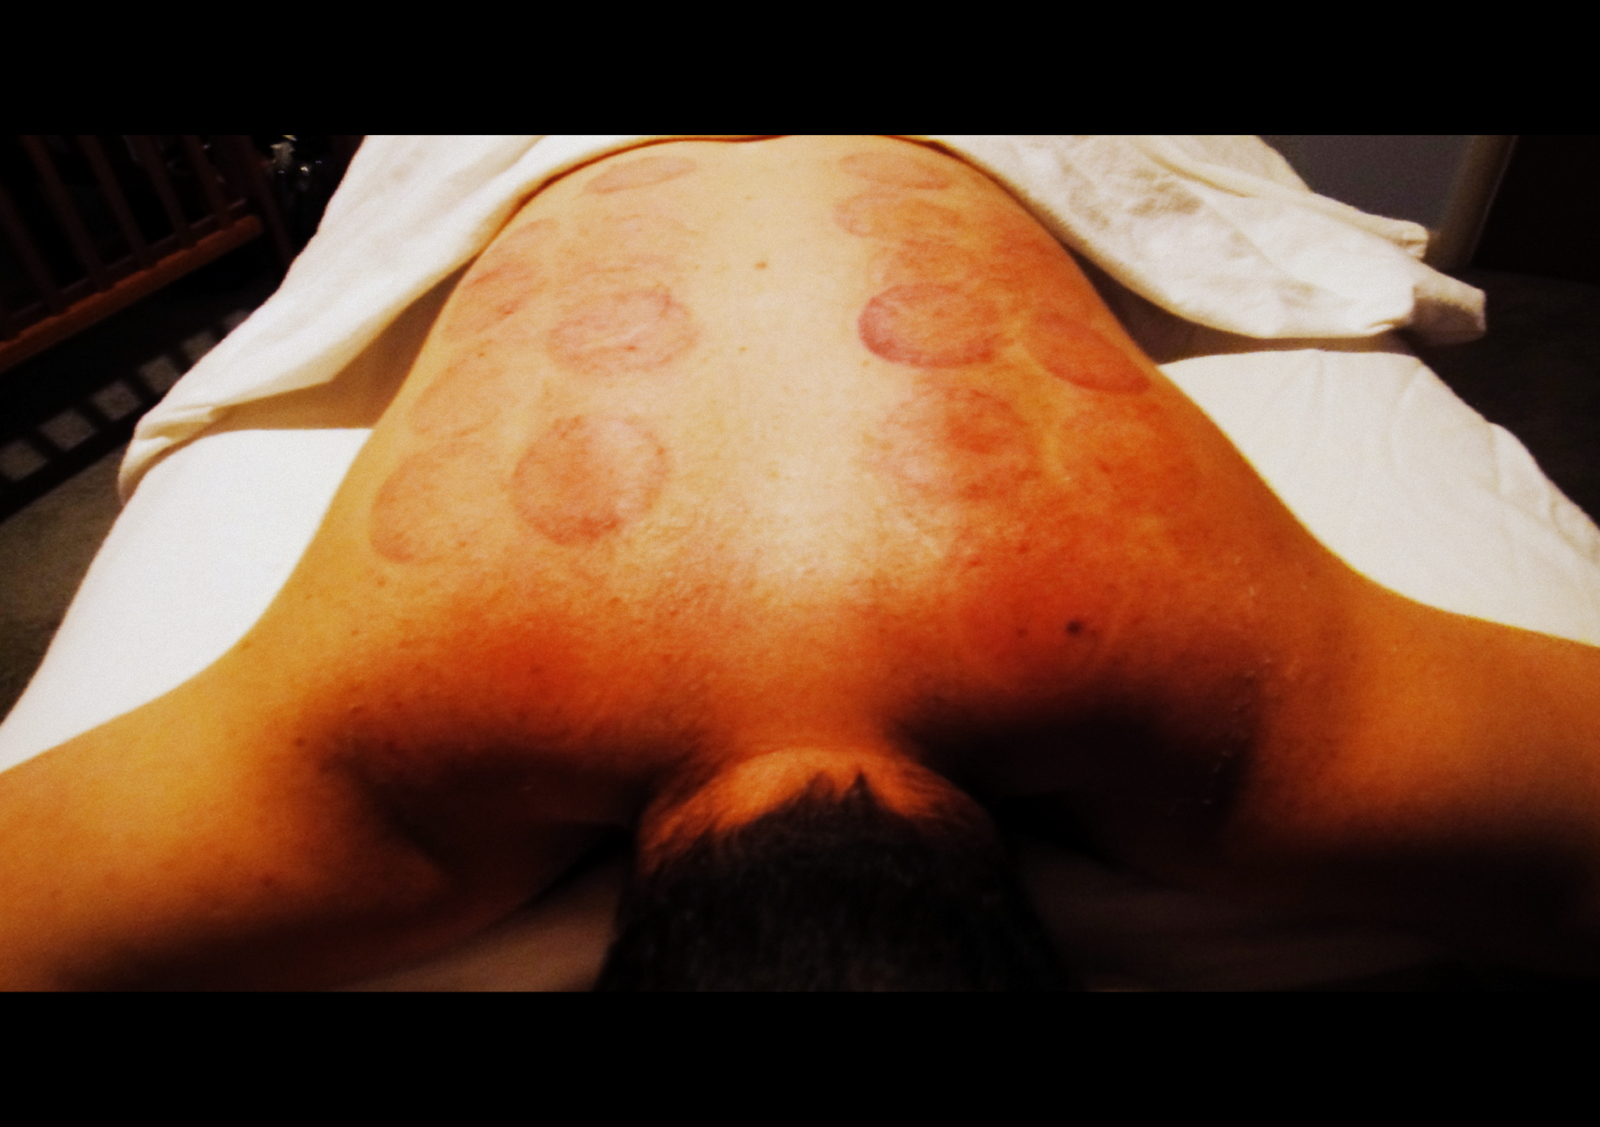 cupping back 2